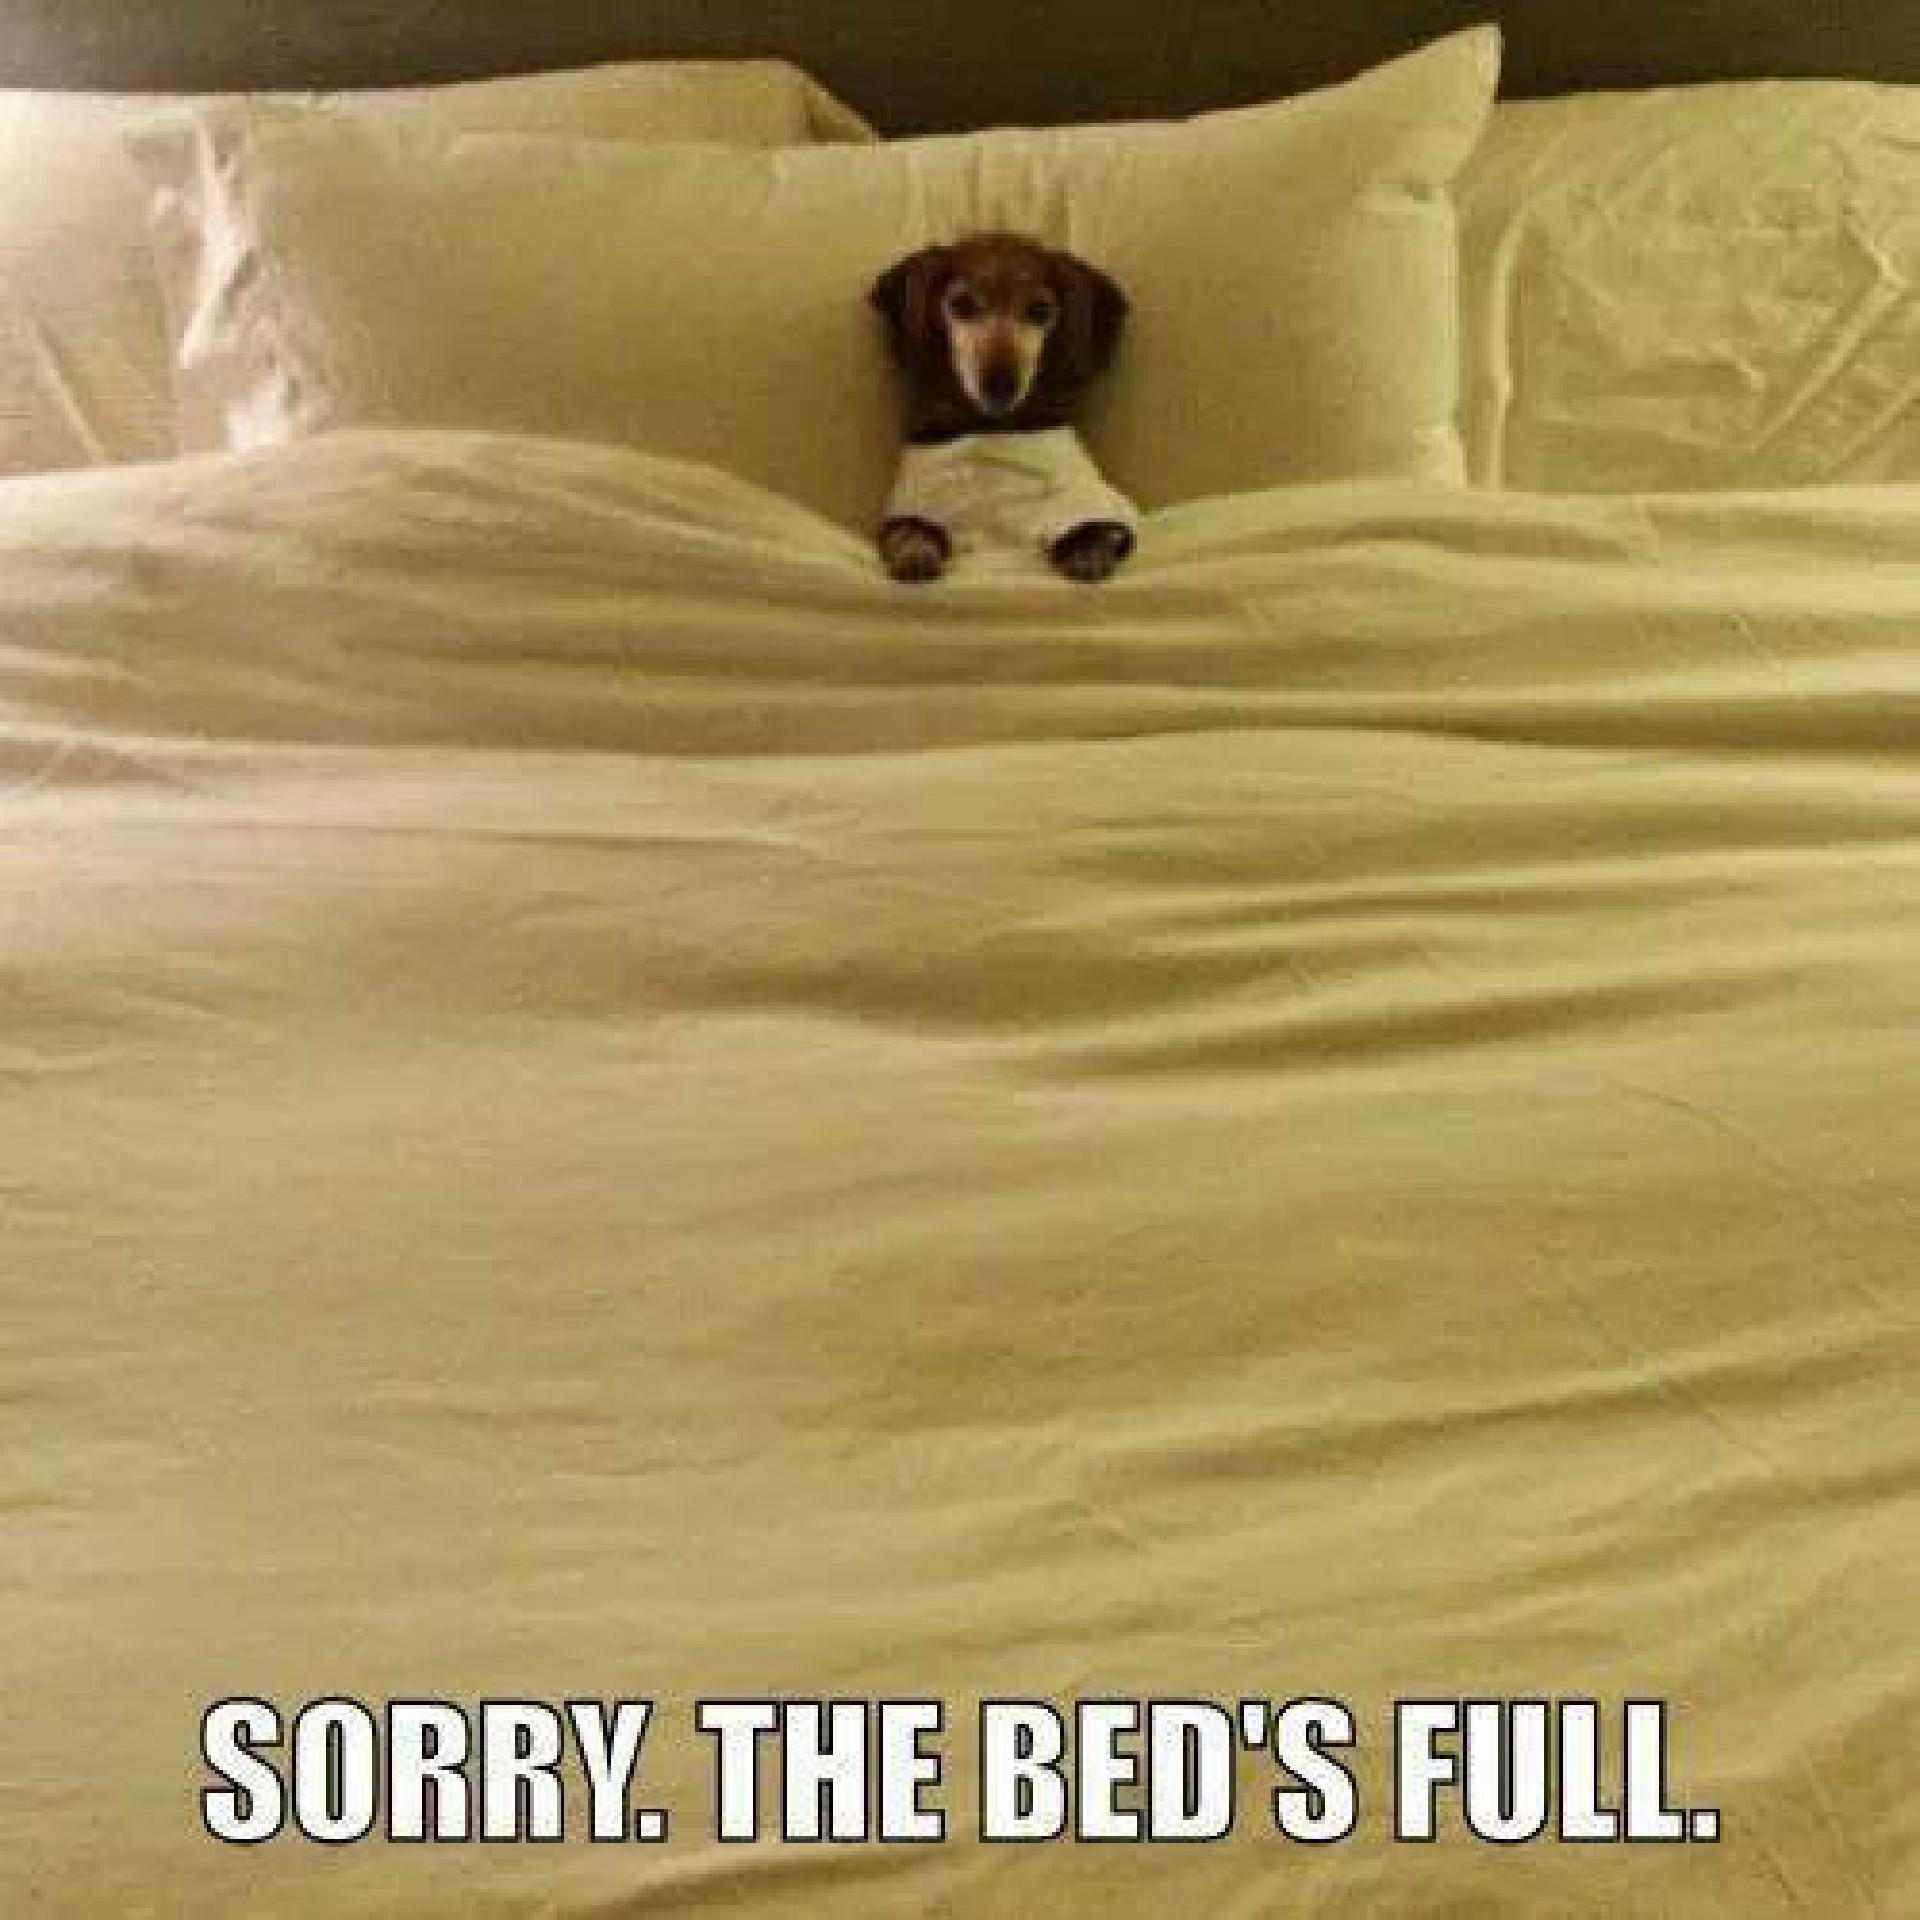 Sorry. The bed's full.